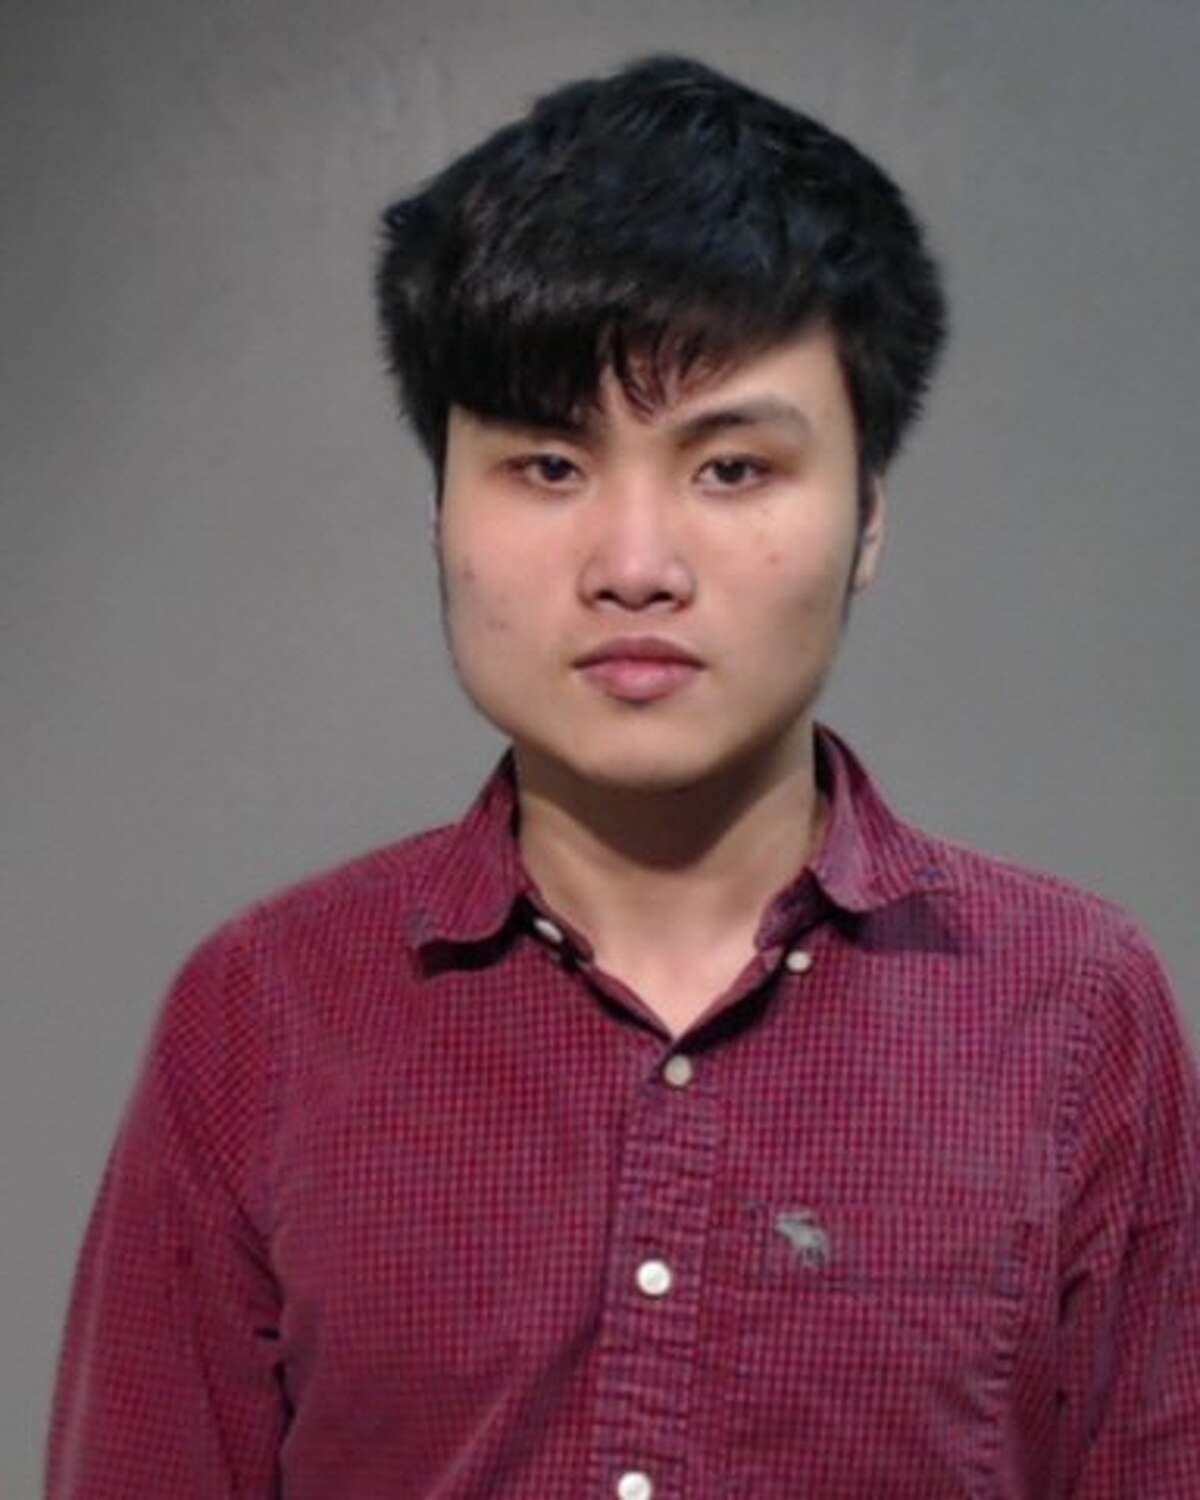 Chen Guan Yao was charged in connection with two eight liner gambling businesses operating illegally in La Joya on March 18, 2016.